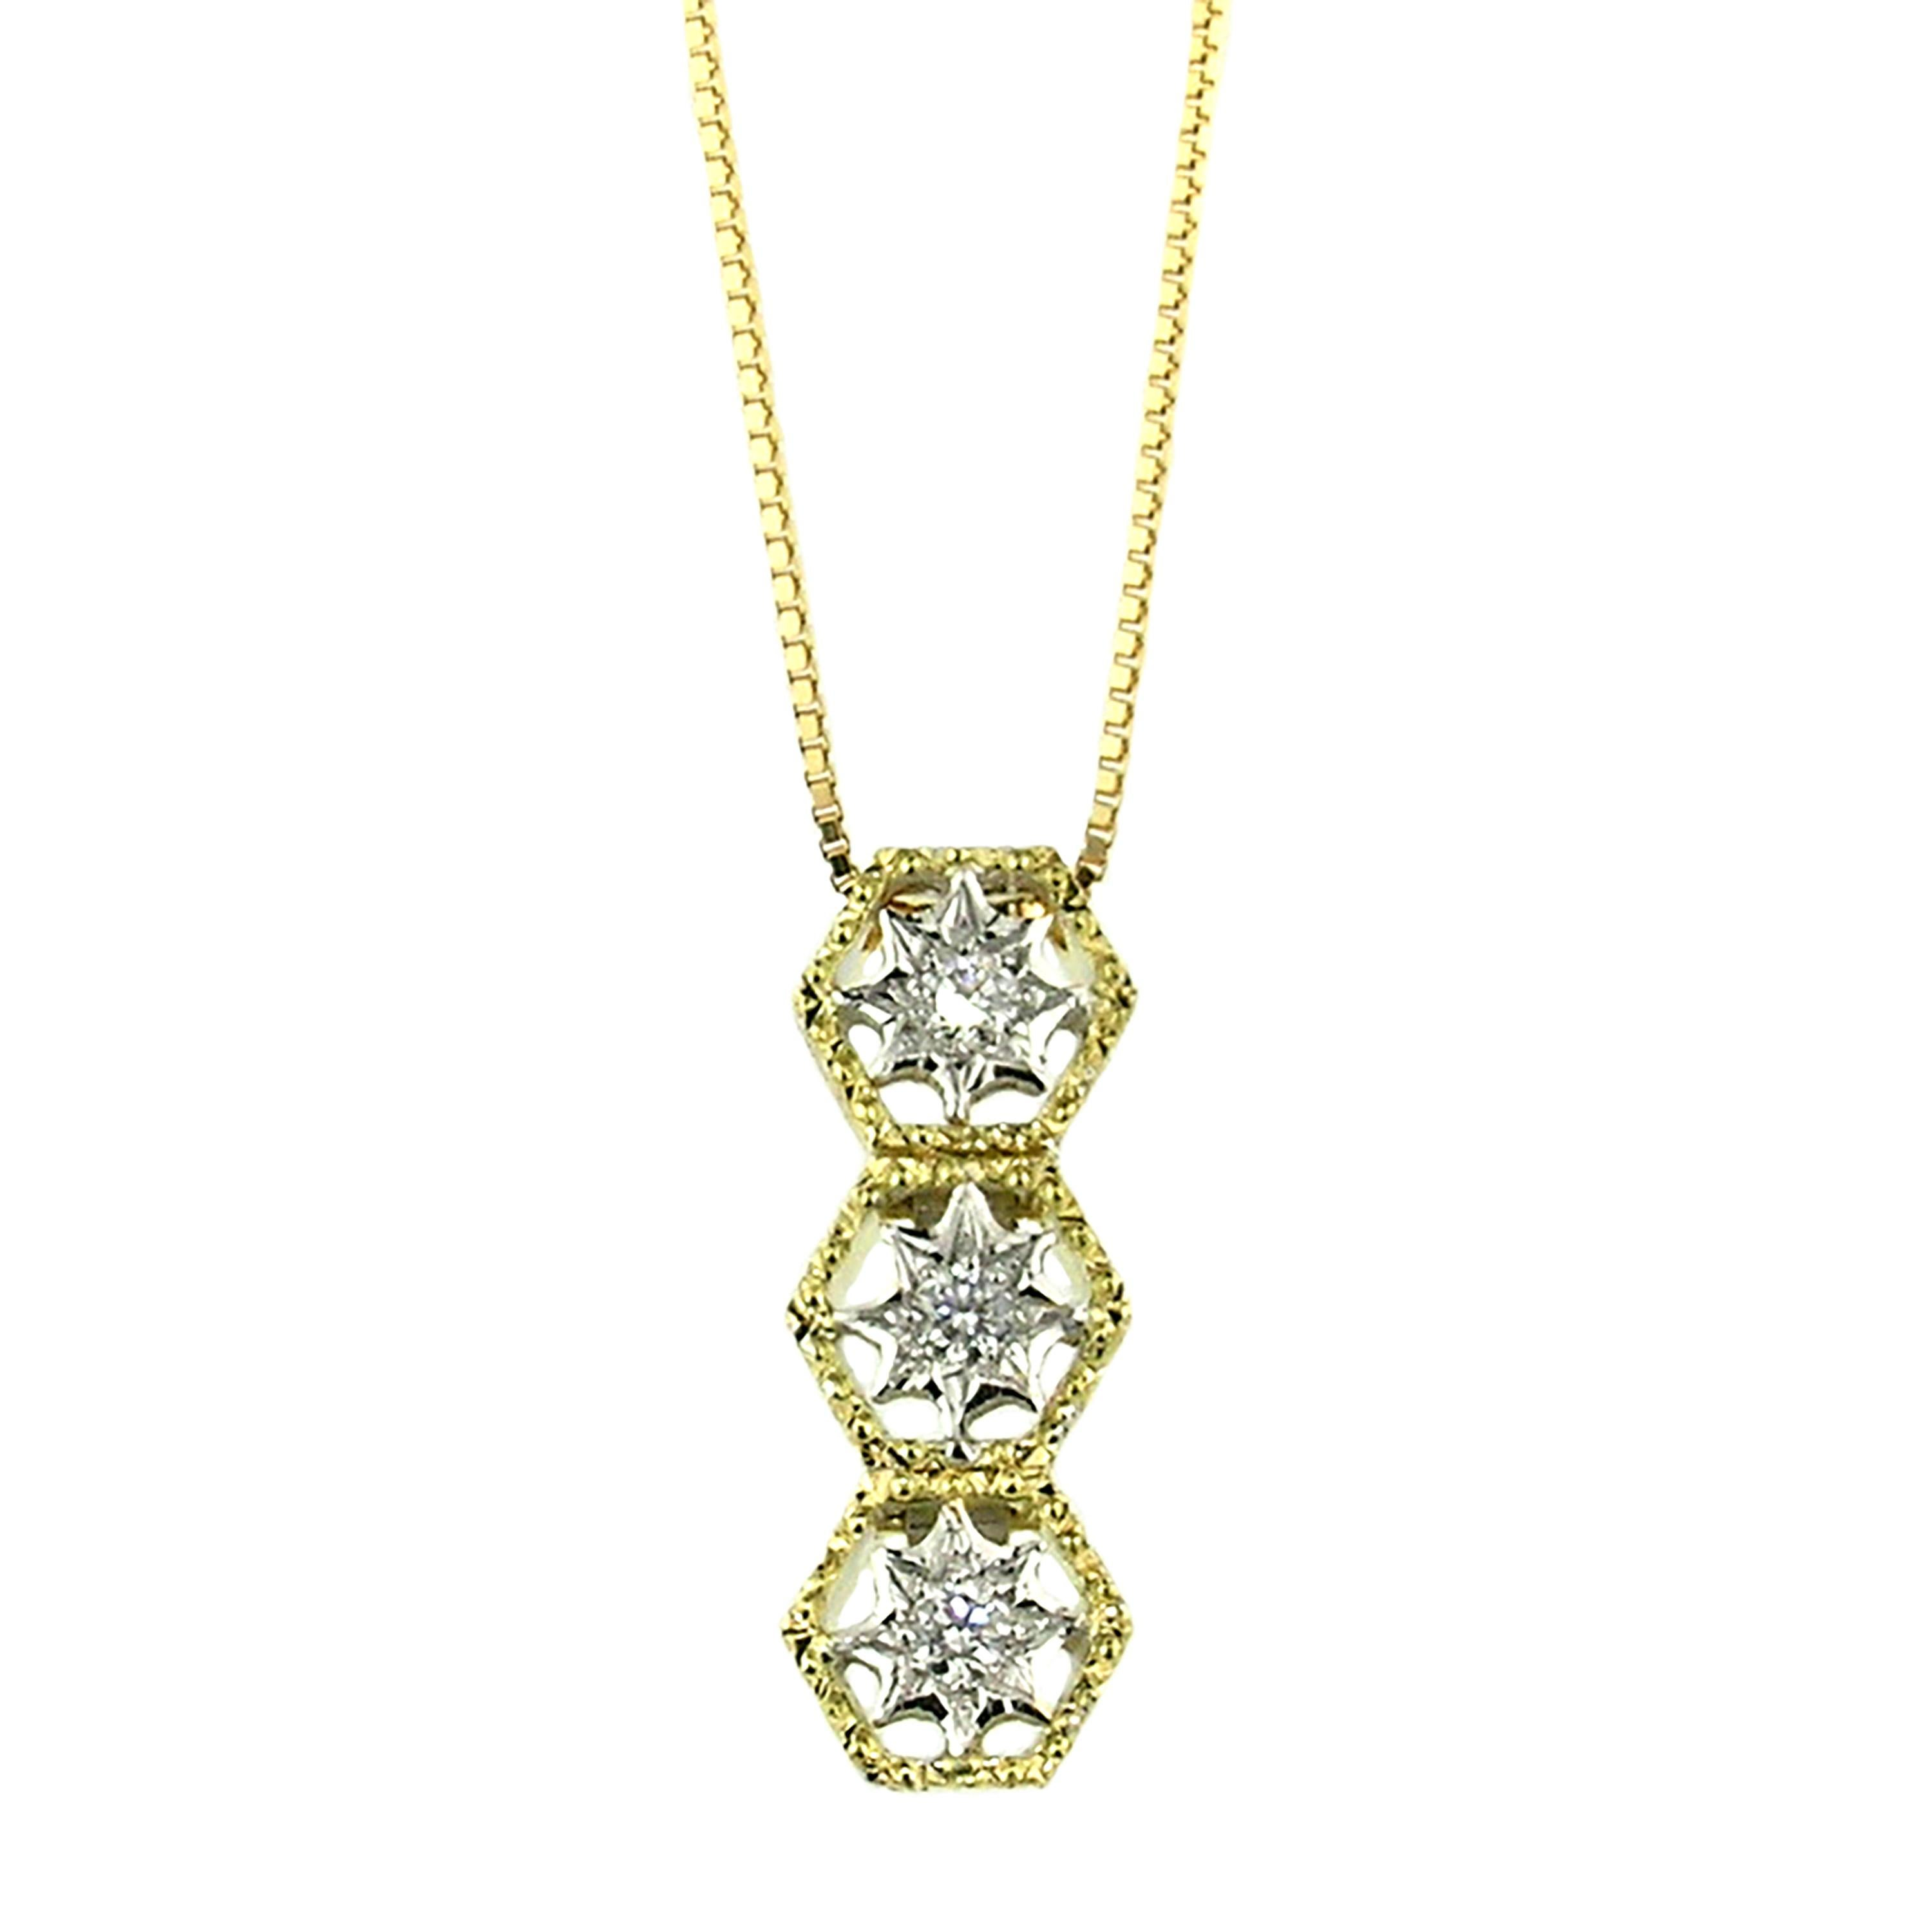 18kt Gold and Diamond Necklace, Hand Engraved and Handmade in Italy